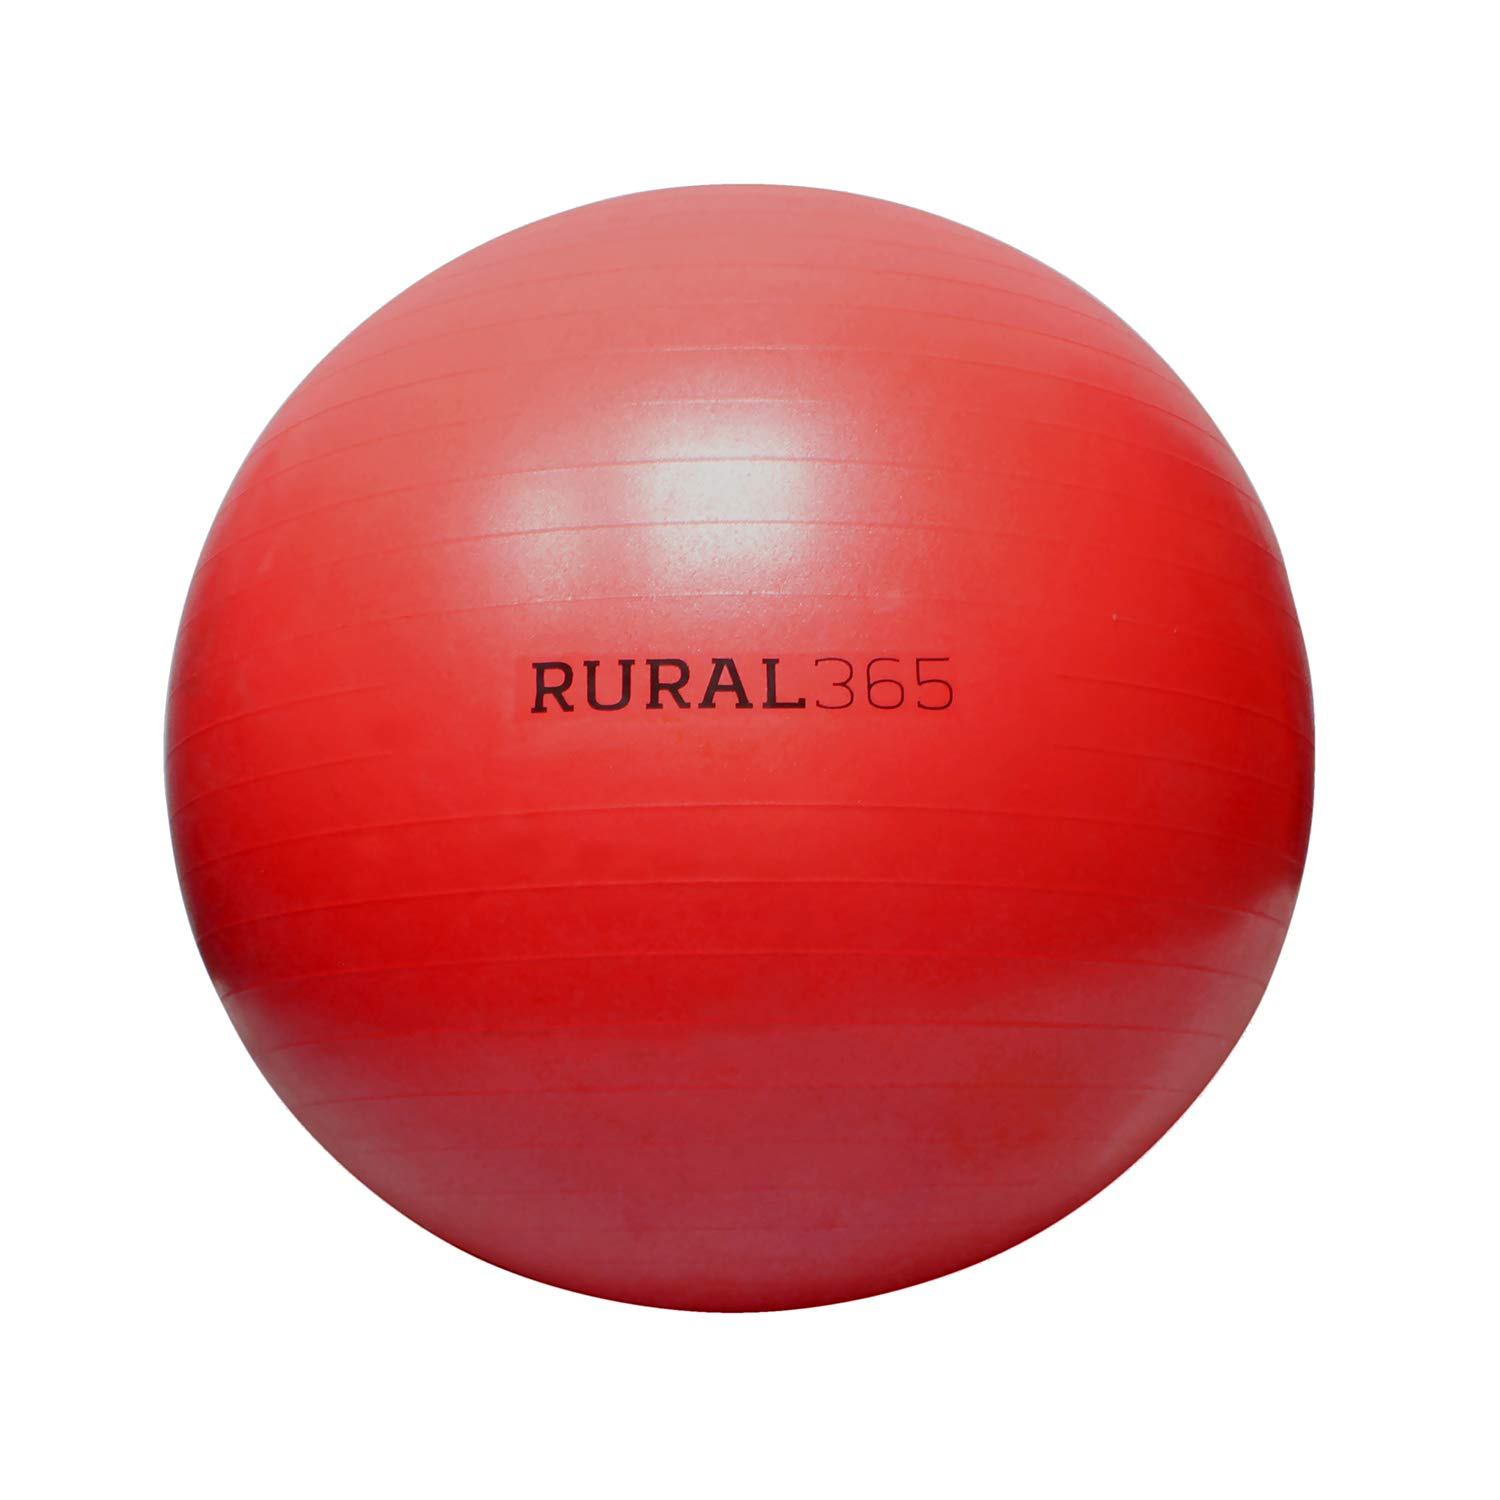 Red 30 Inch Red 30 Inch Rural365   Large Horse Ball Toy in Red, 30  Inch Ball Anti-Burst Giant Horse Ball – Horse Soccer Ball, Pump Included